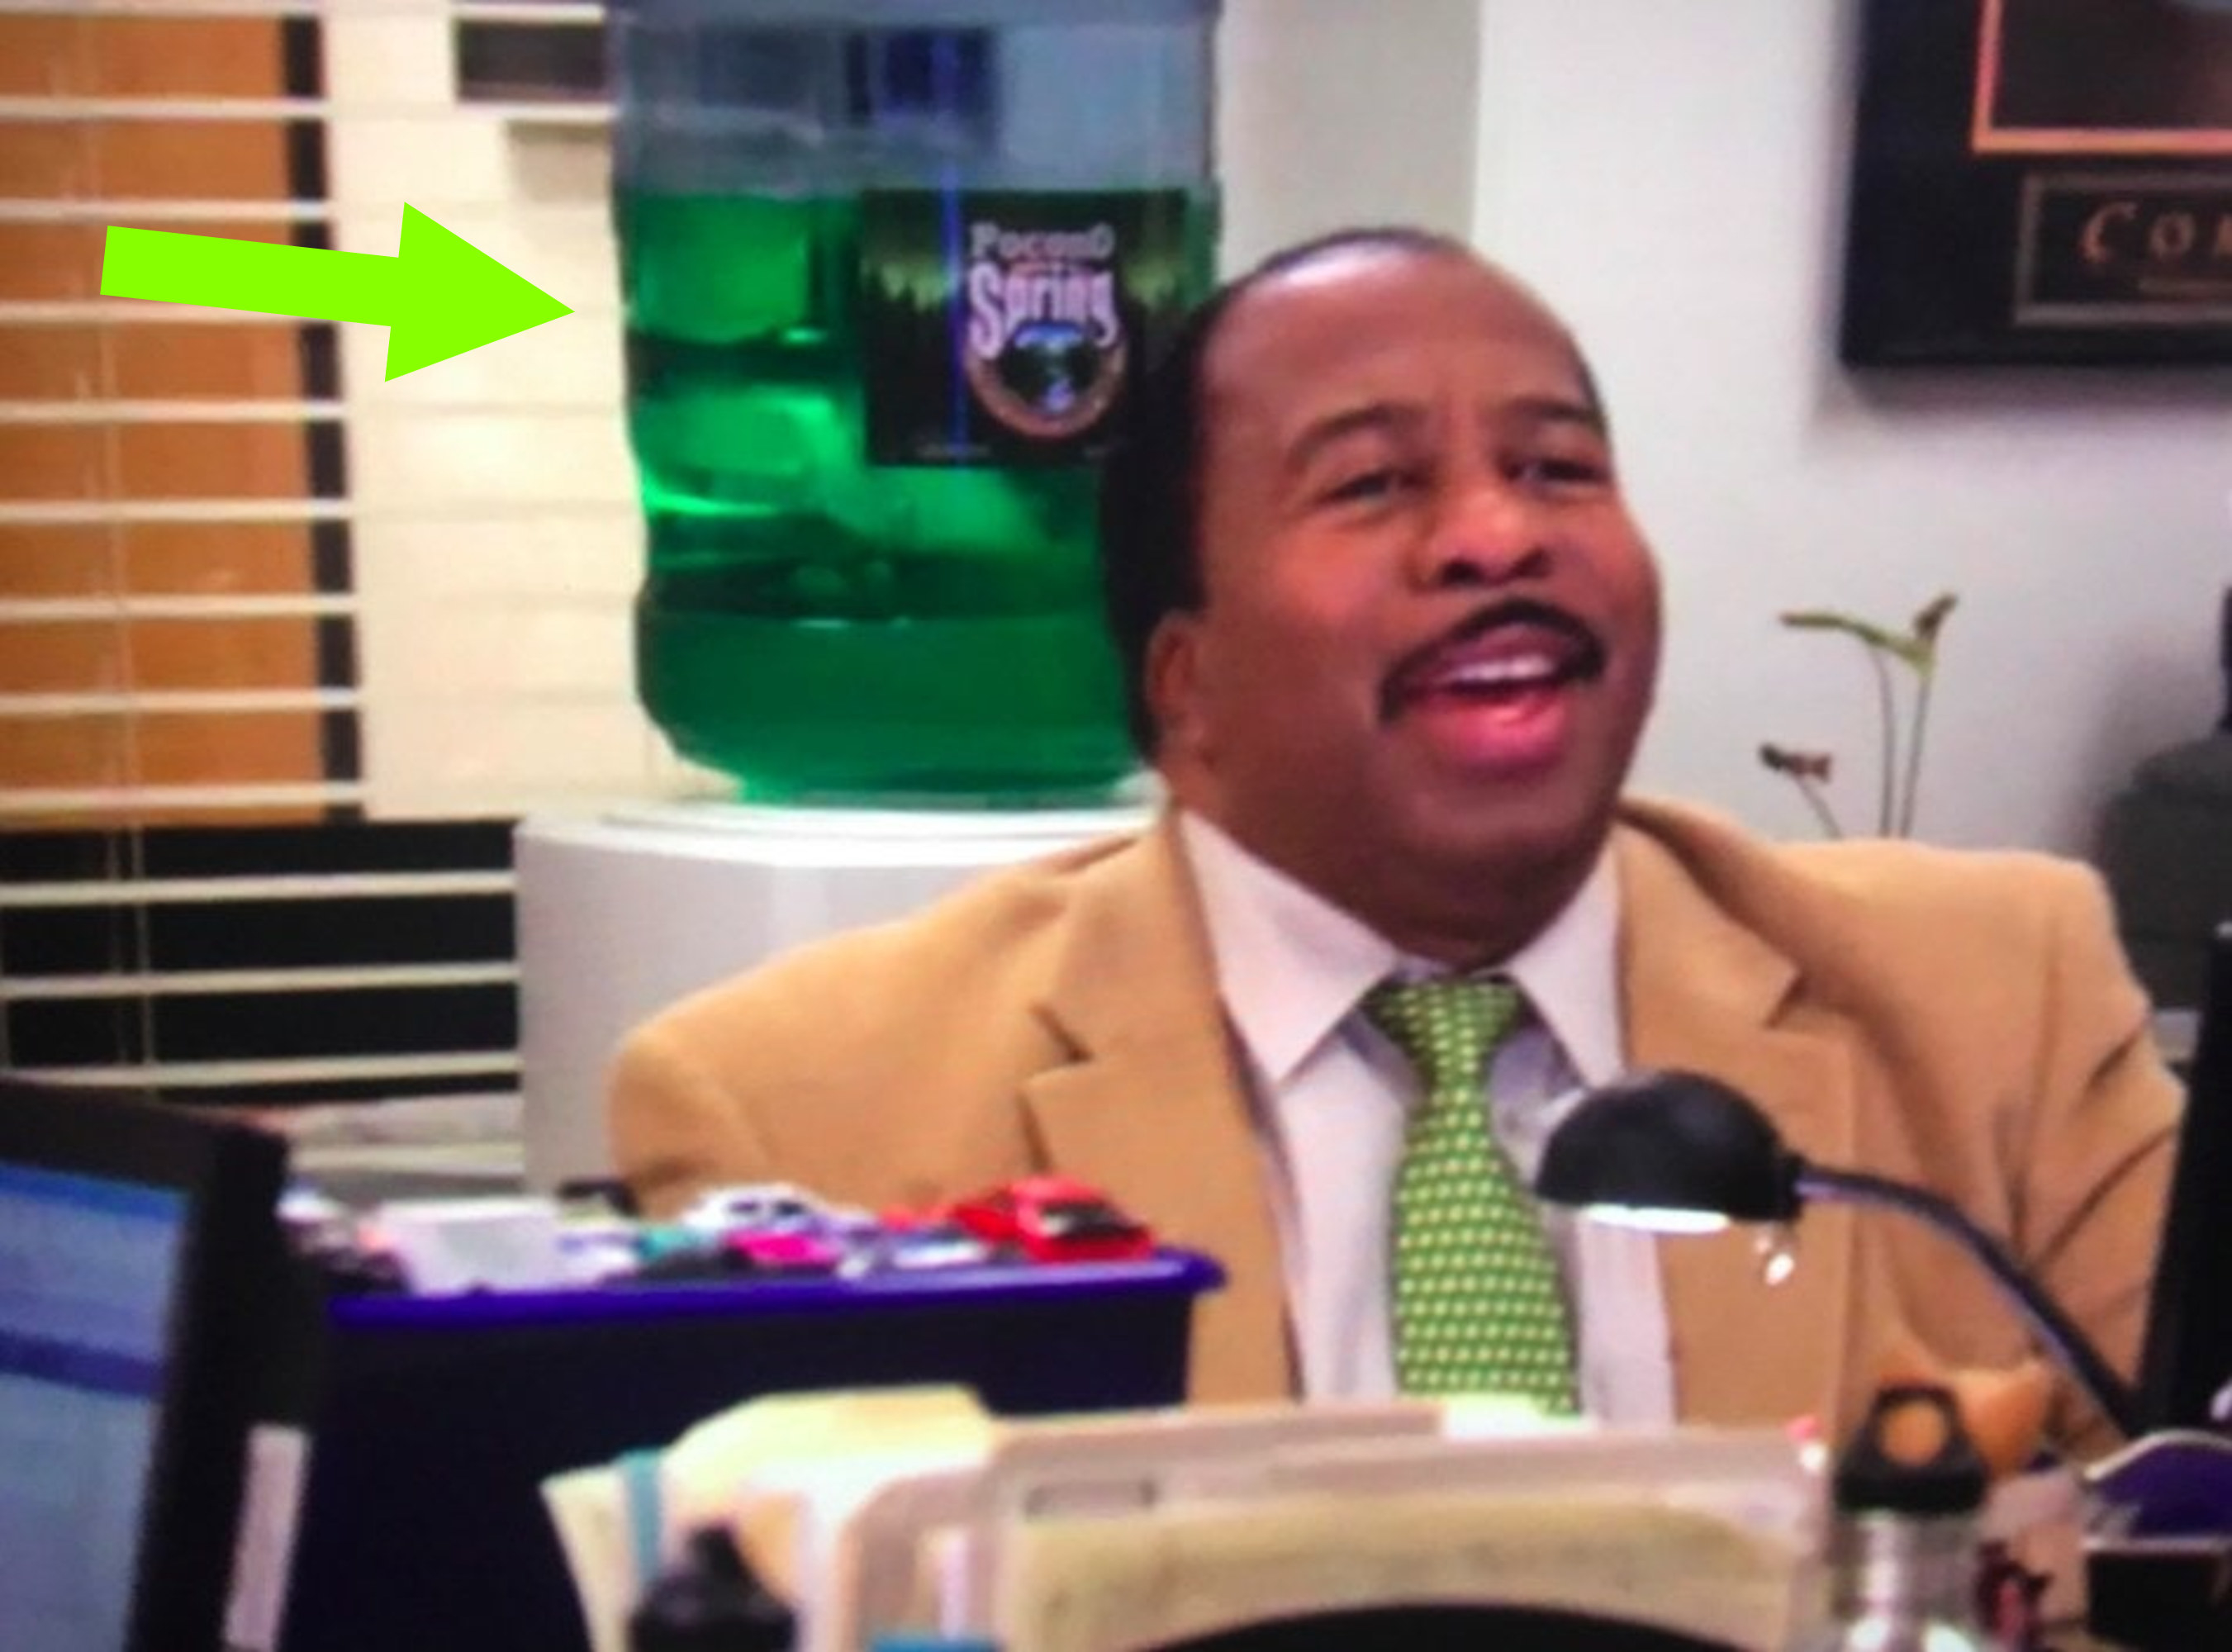 Stanley sitting at his desk and, in a rare occurrence, smiling